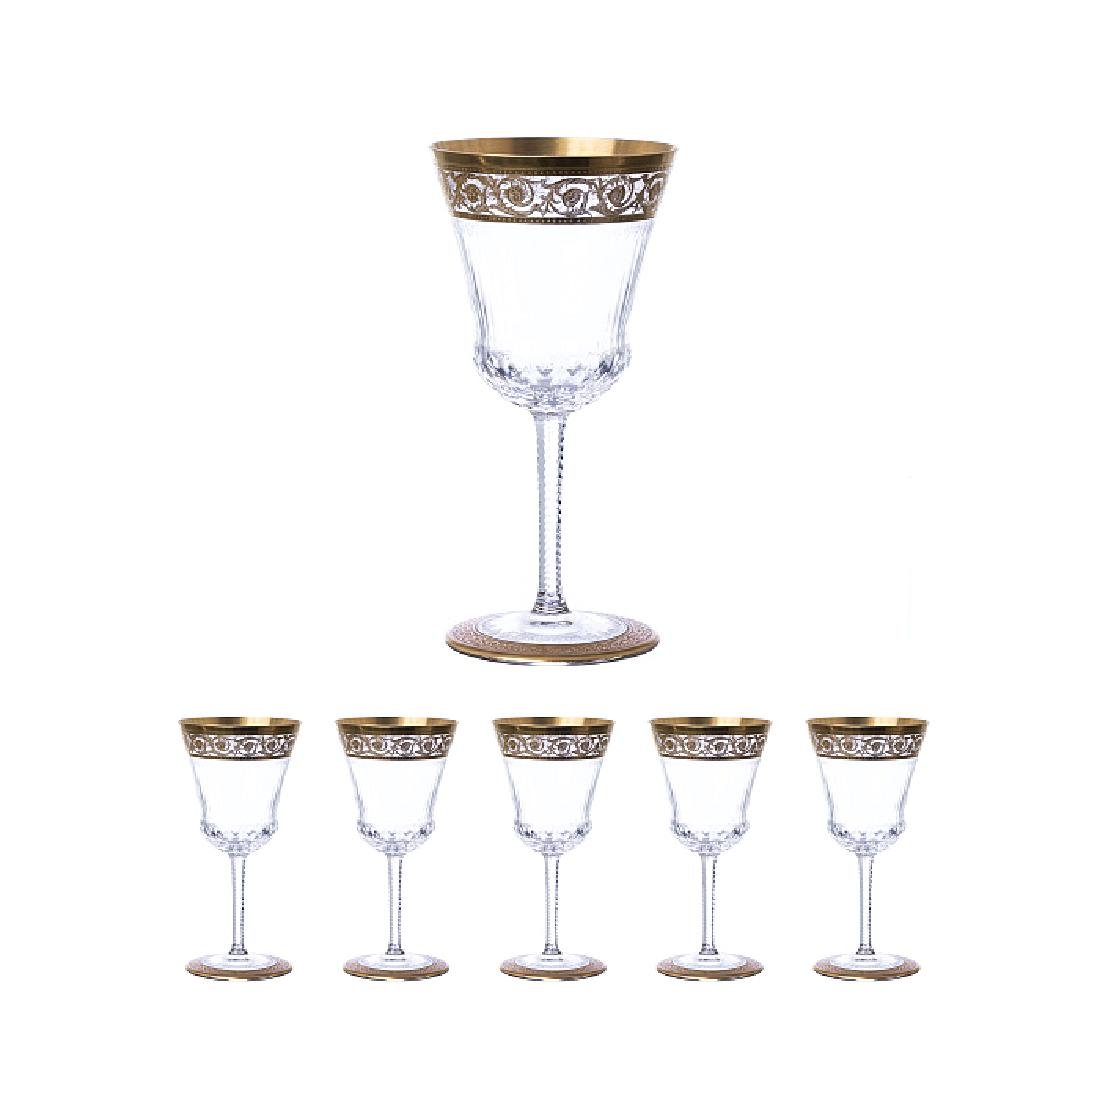 SAINT LOUIS - Six white wine glasses in crystal